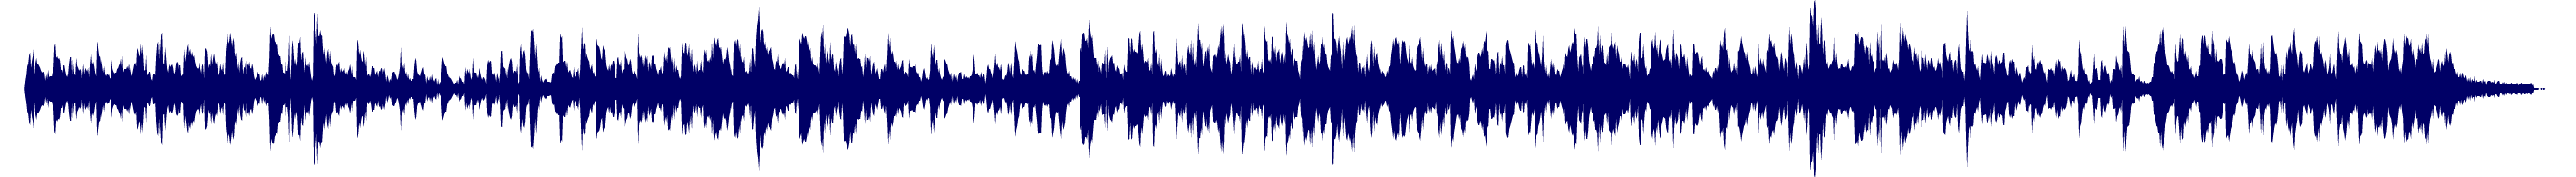 waveform of track #89124